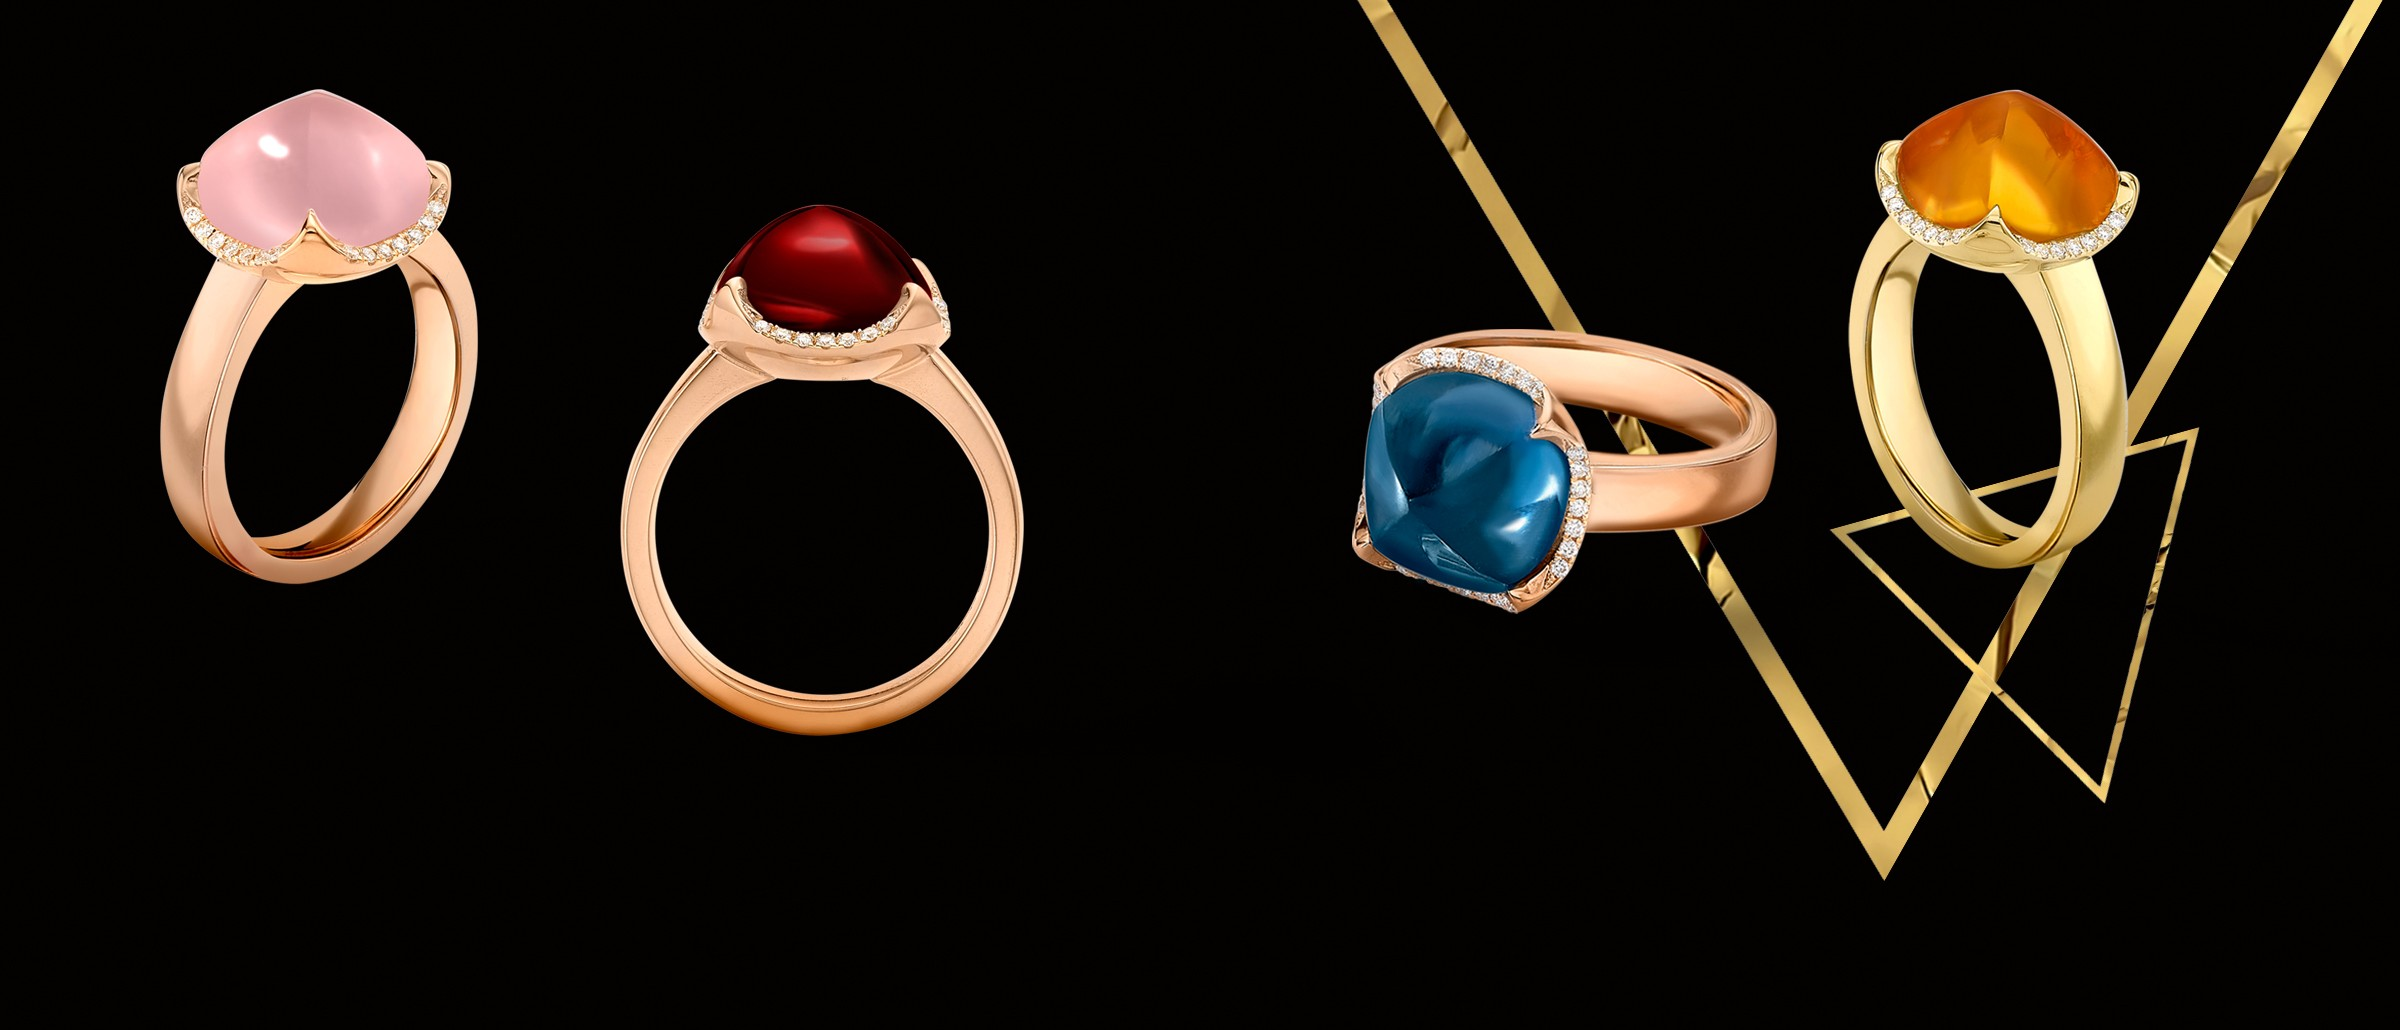 Our Iconic Gemstone Pyramid Rings